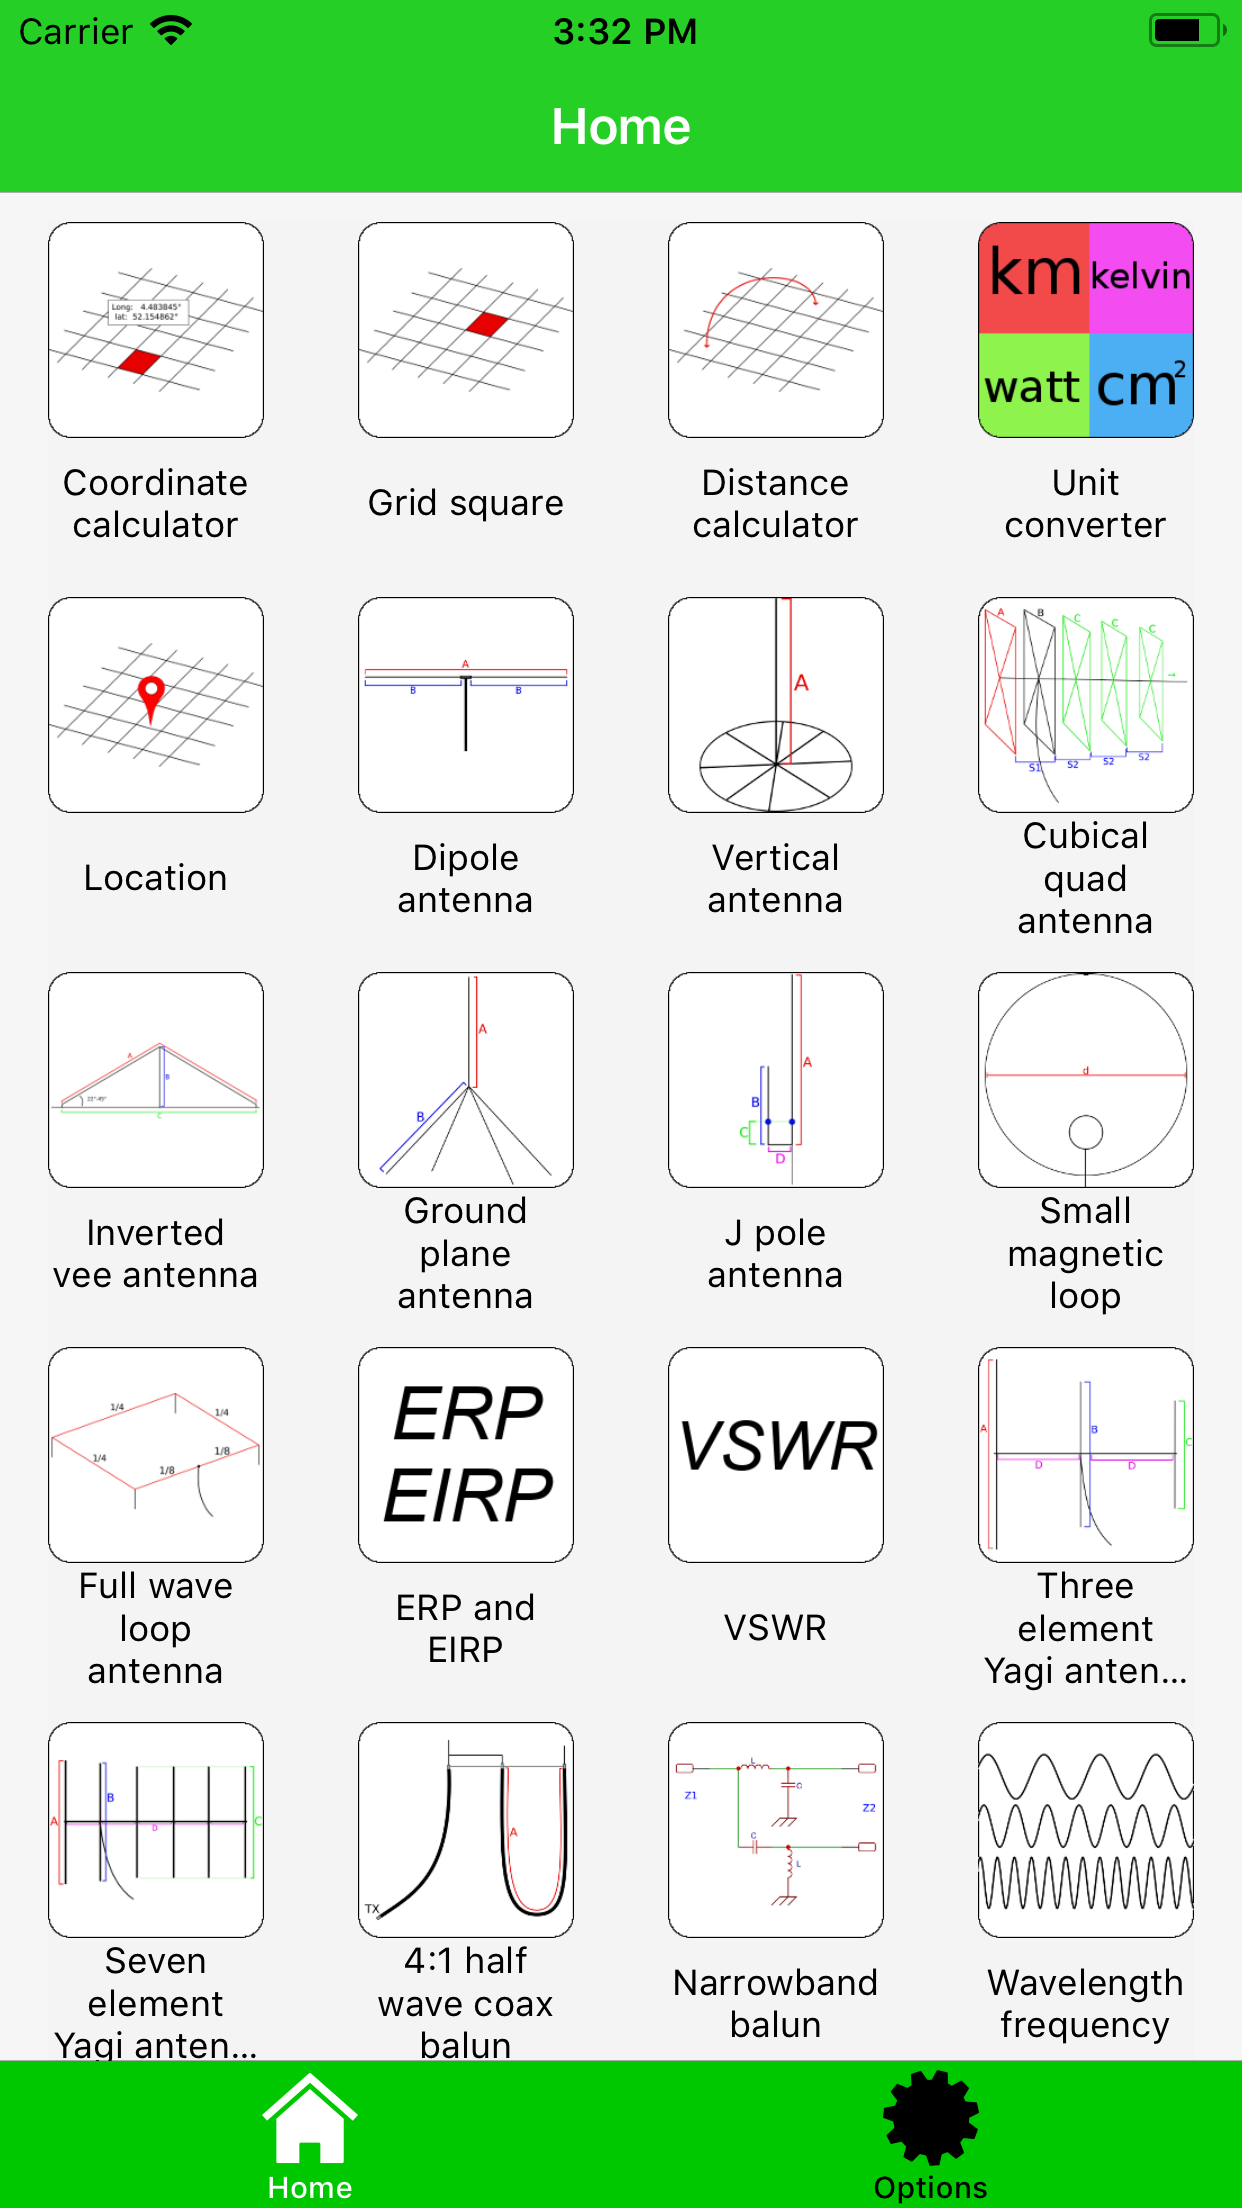 7 Element Yagi Antenna Calculator